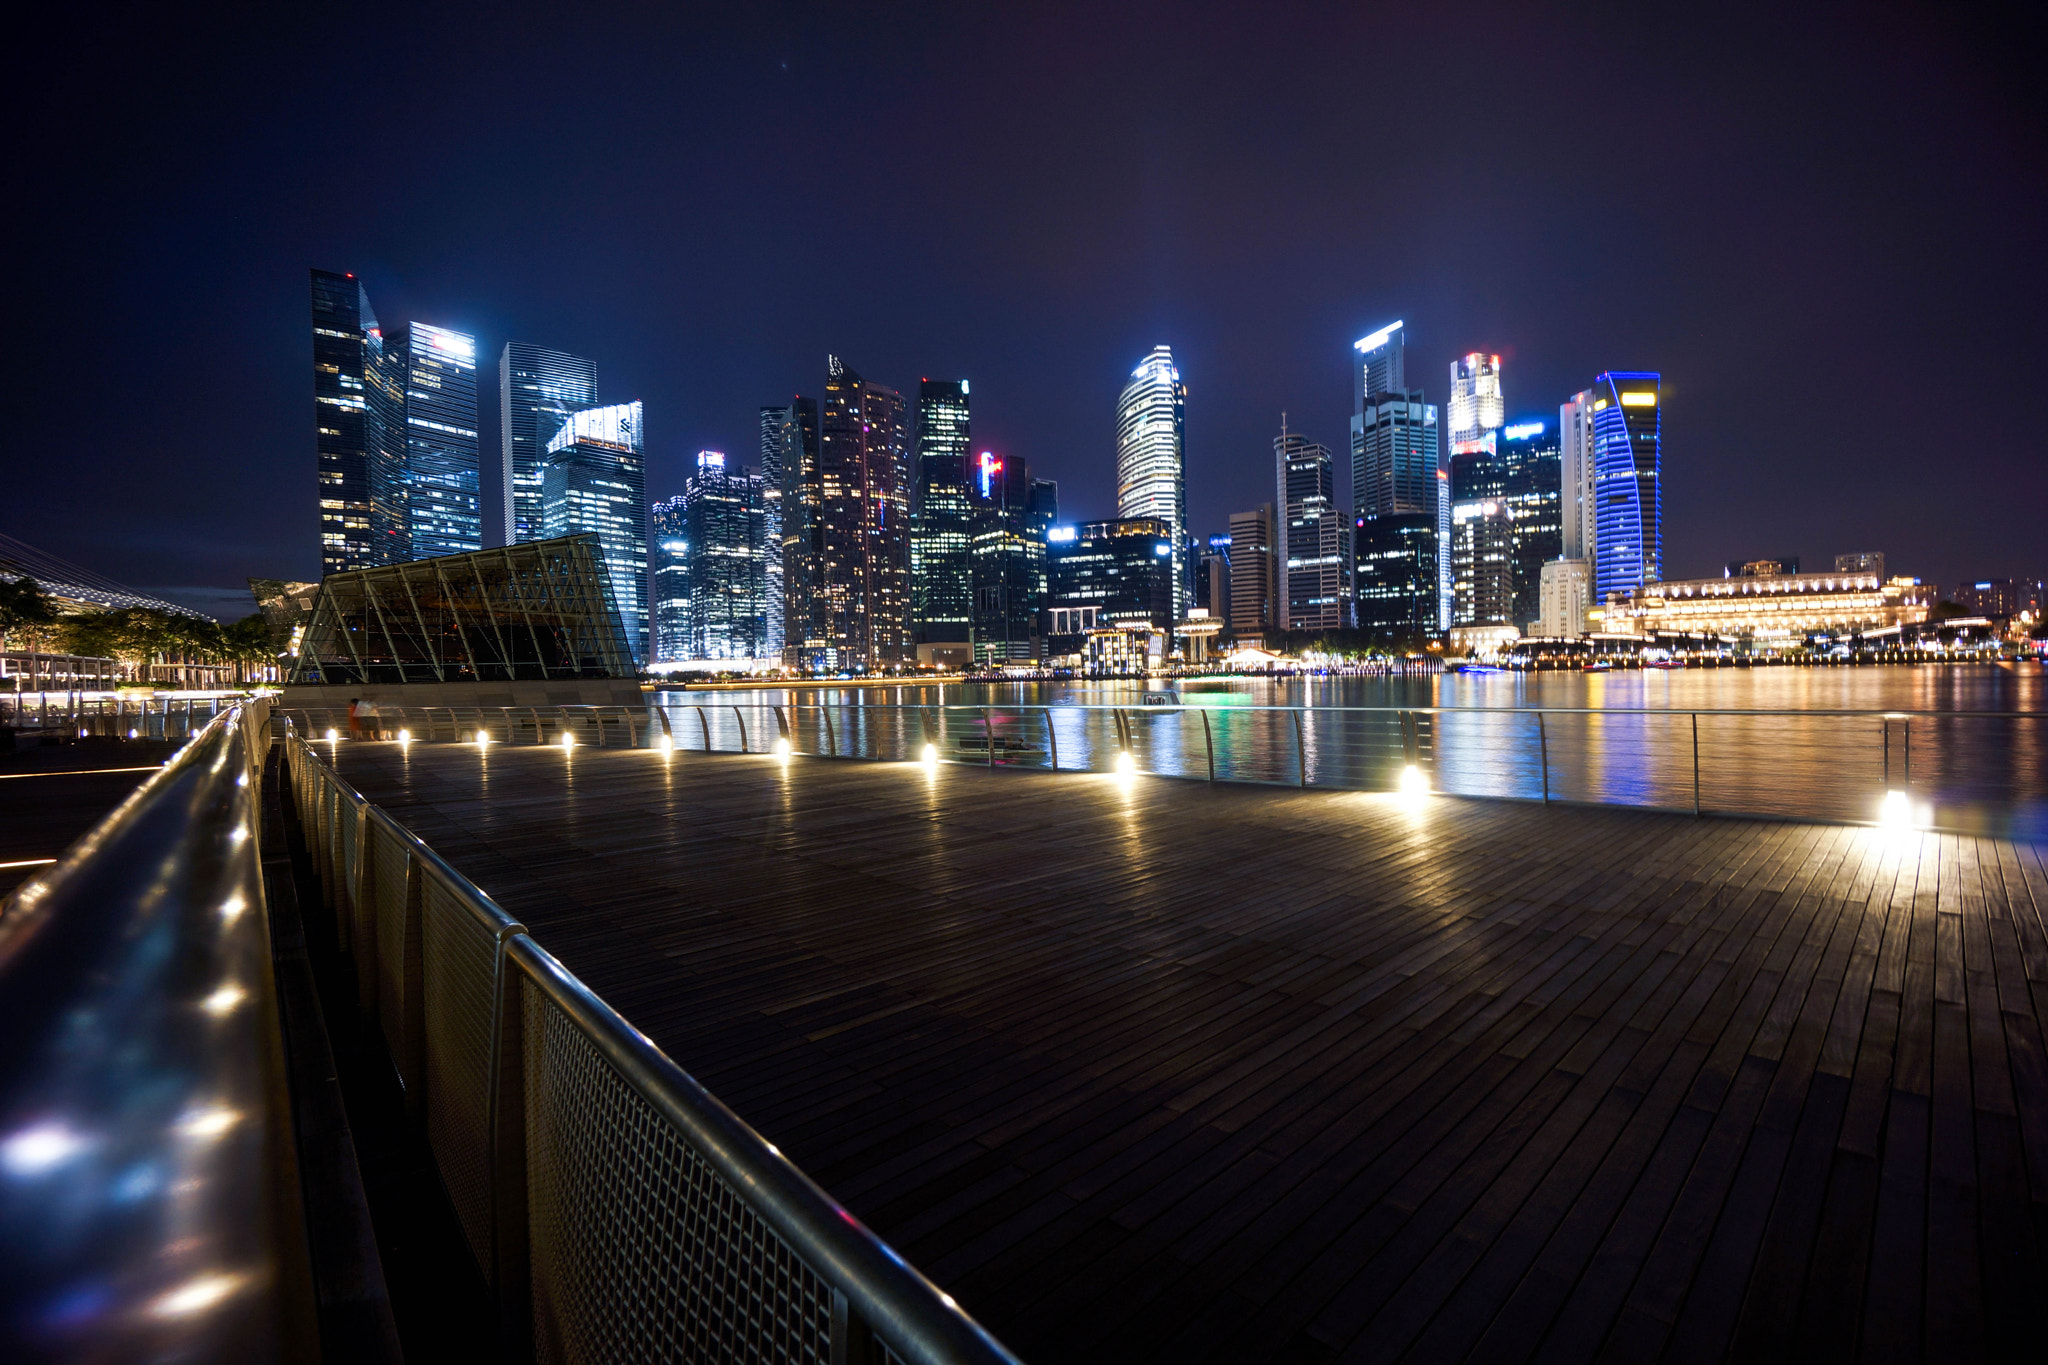 Photograph Singapore by Michael Nguyen on 500px